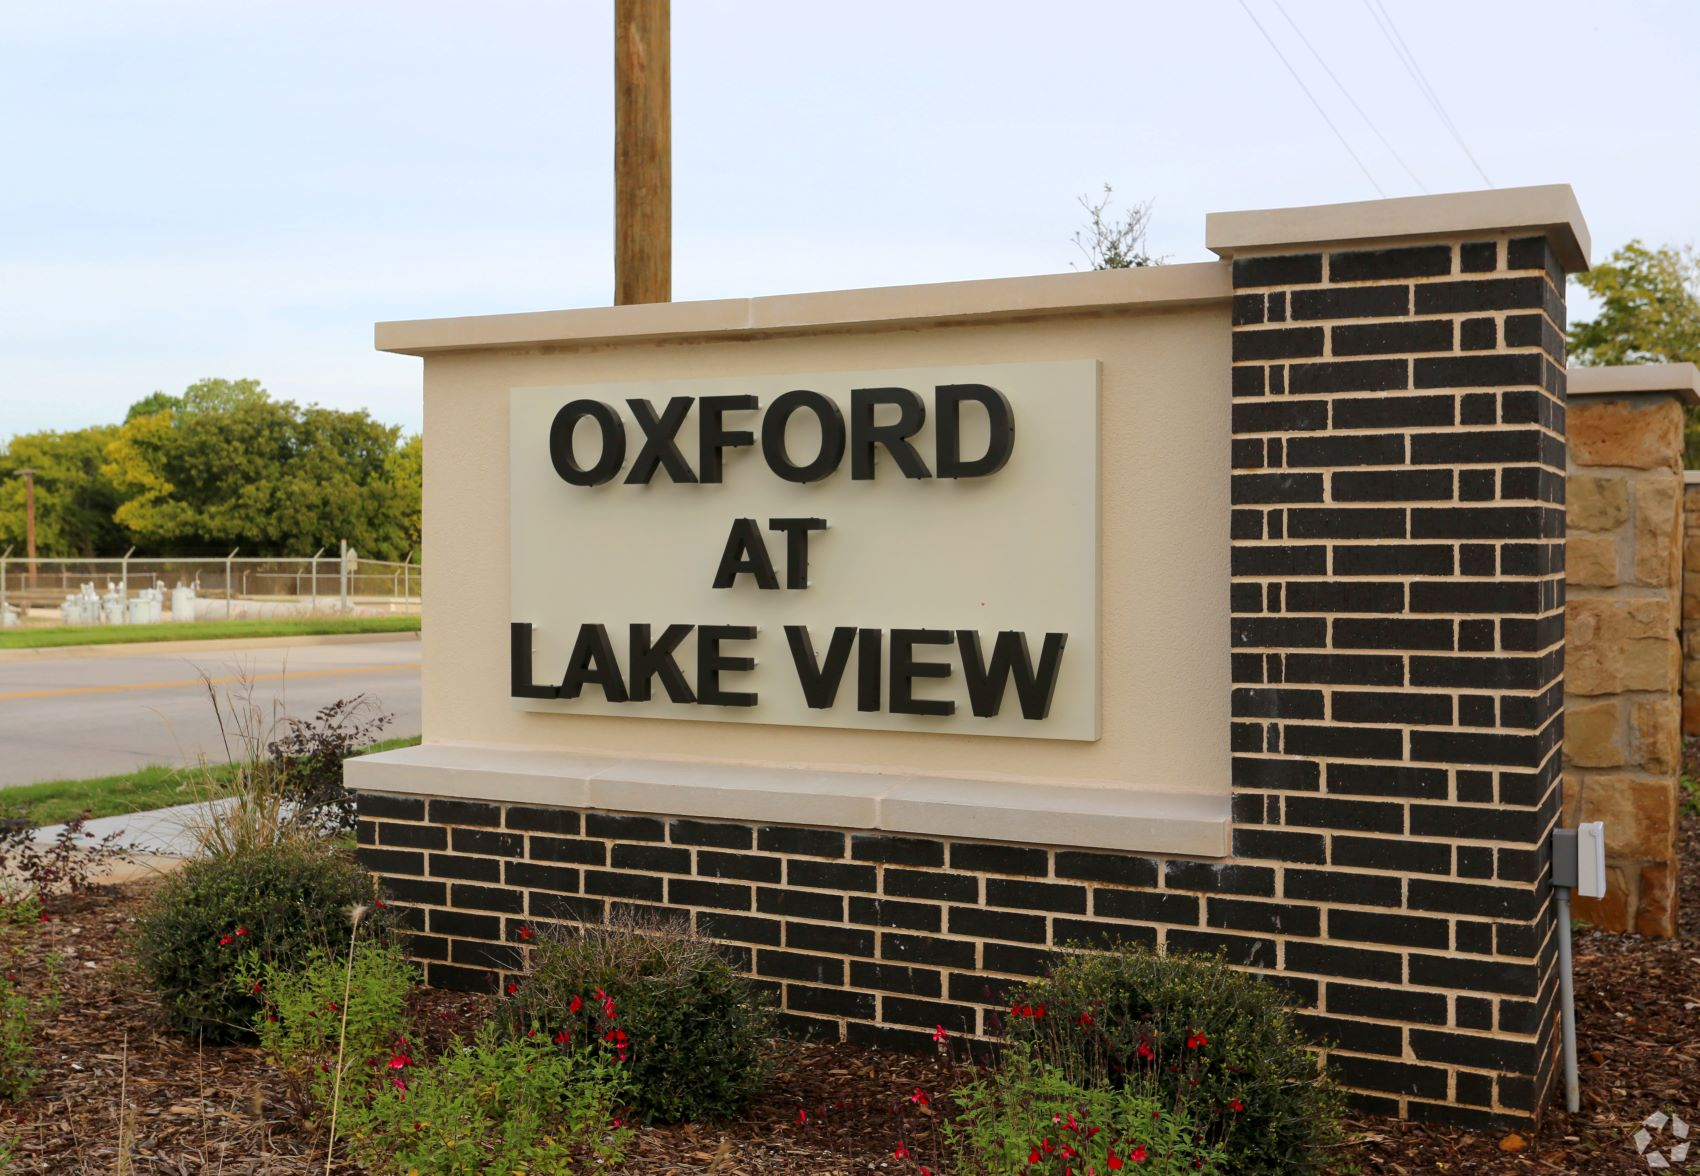 Oxford at Lake View